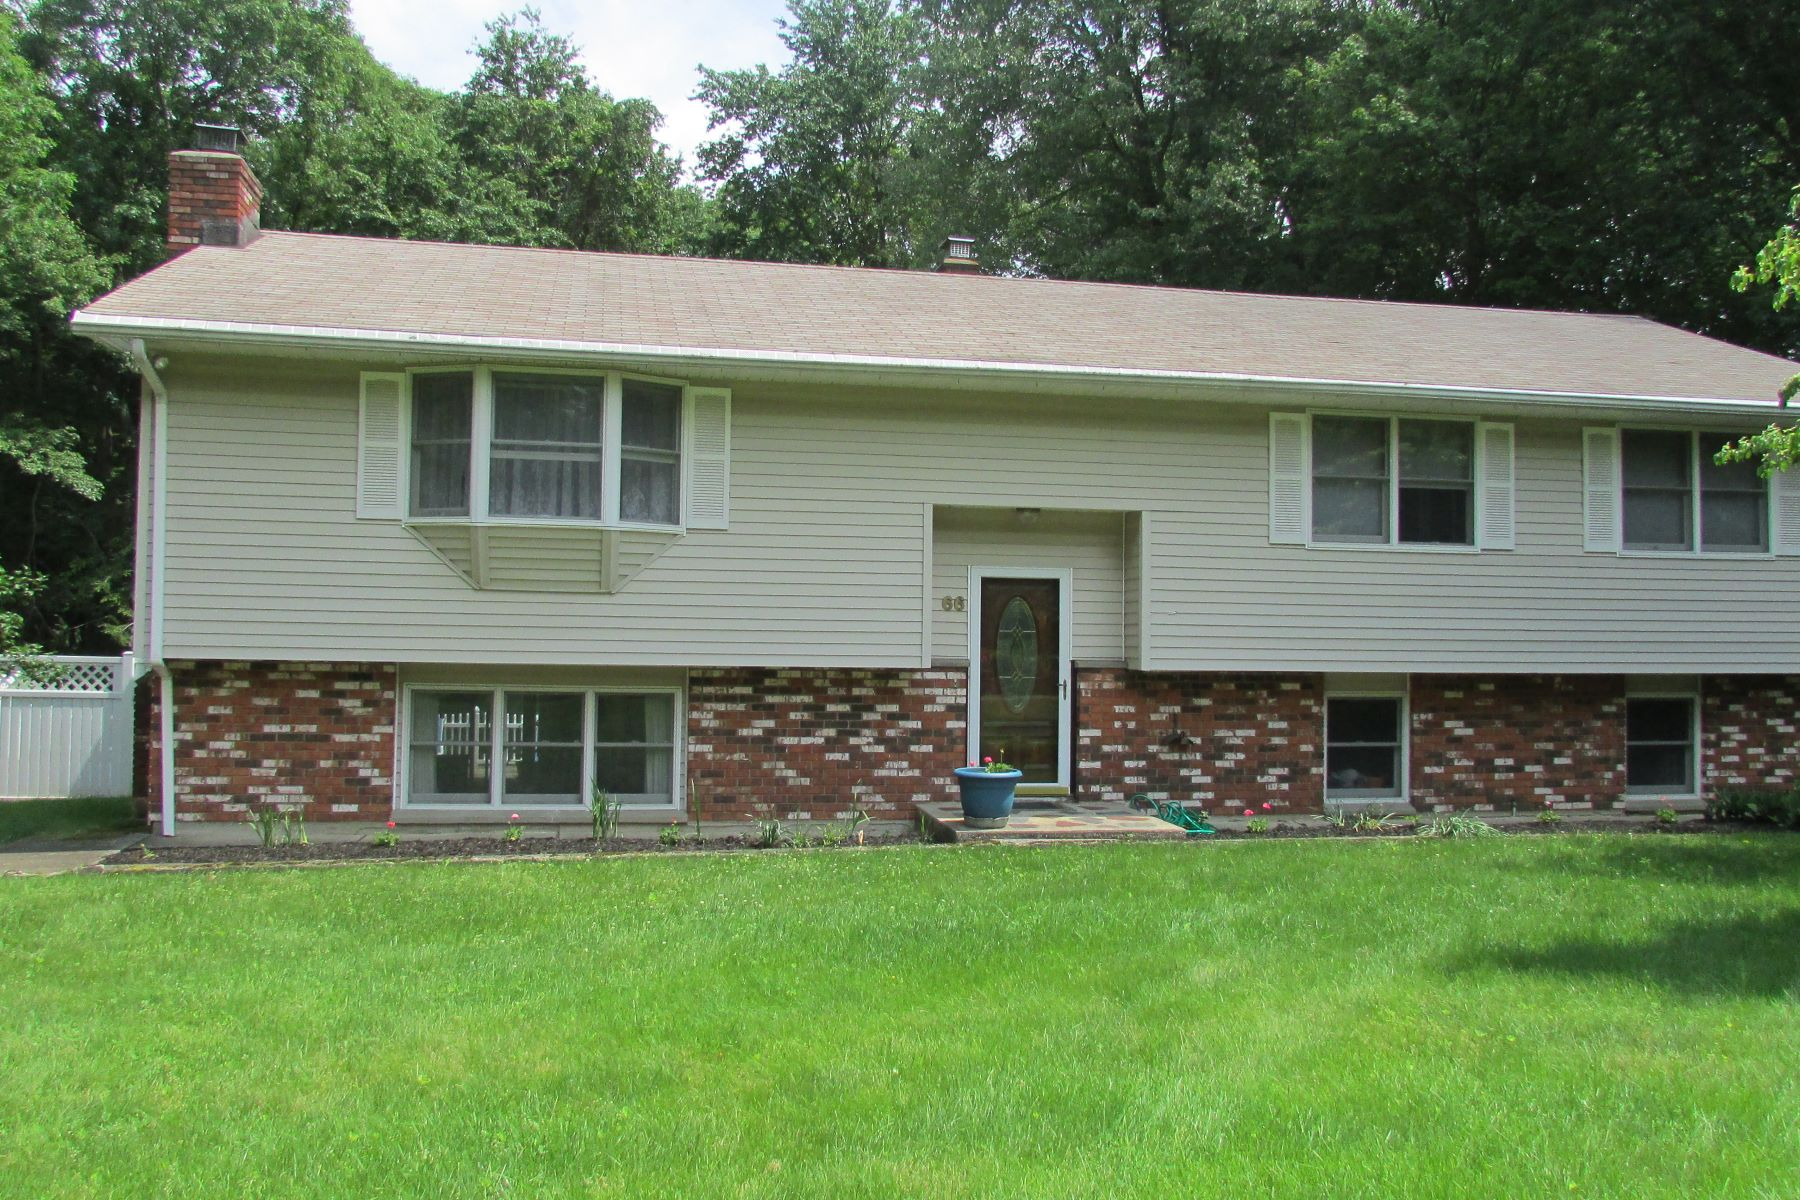 Single Family Home for Sale at Spacious Raised Ranch 66 Fawn Hill Road Shelton, Connecticut 06484 United States